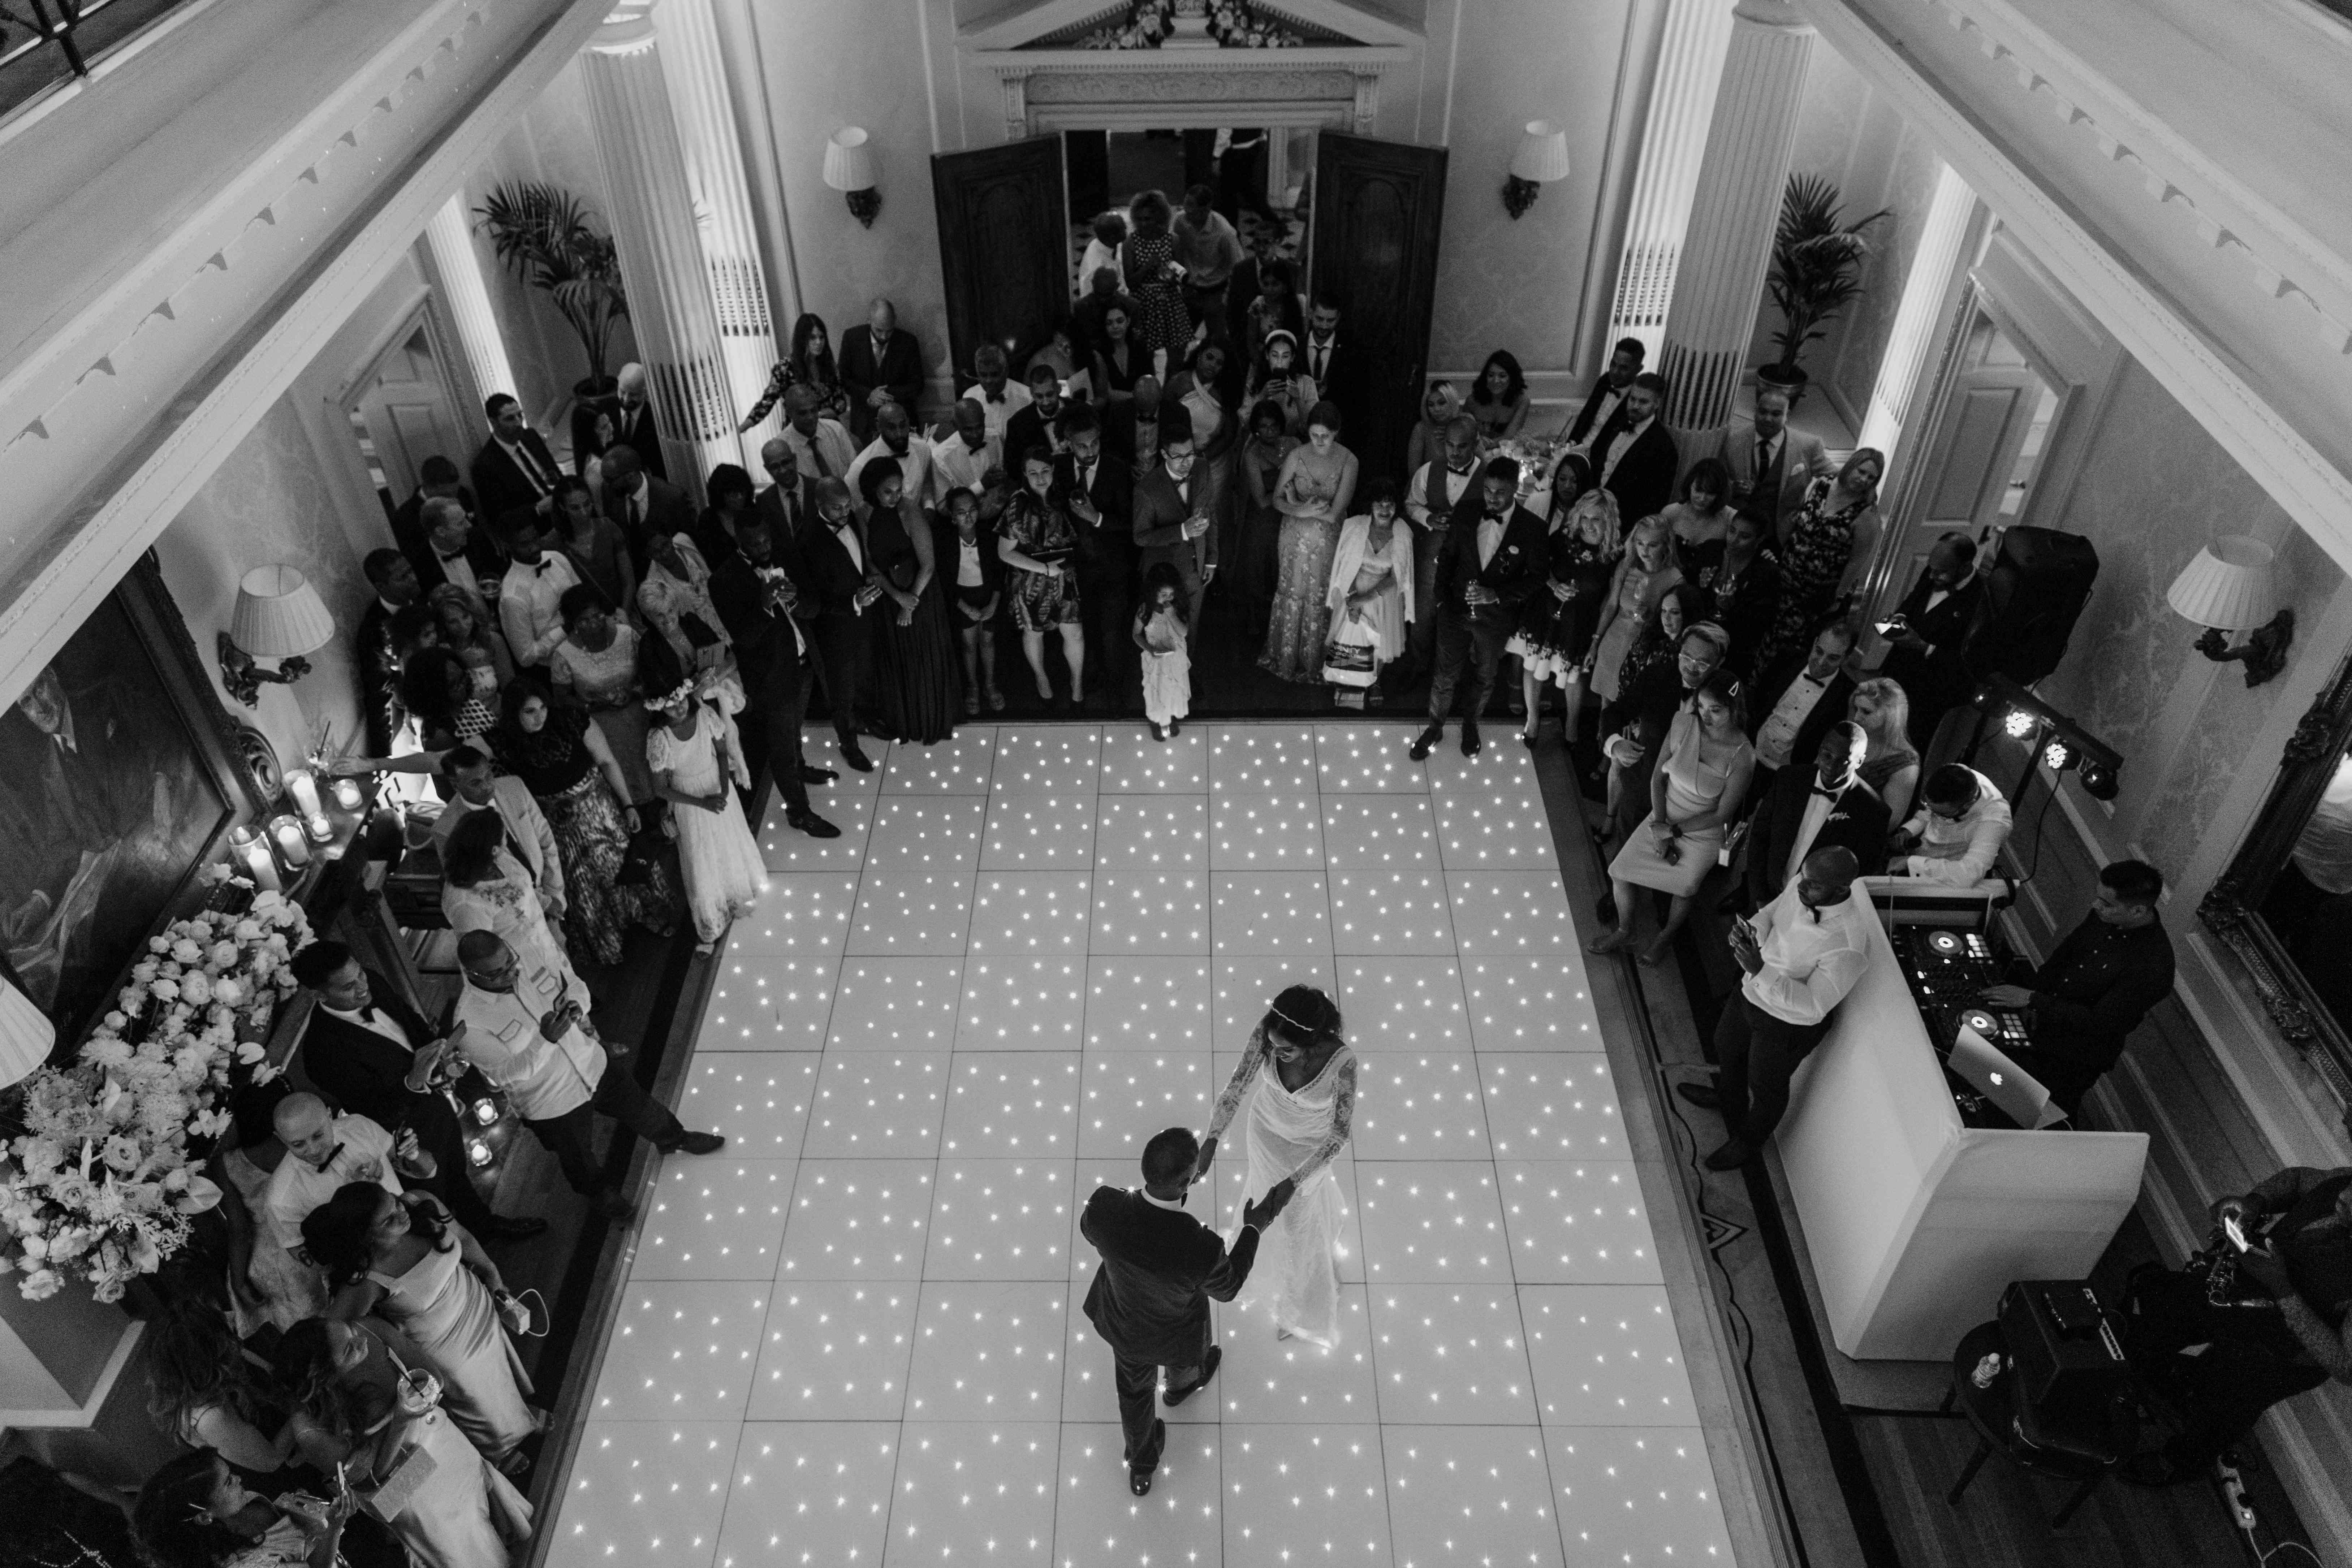 The first dance and dance floor